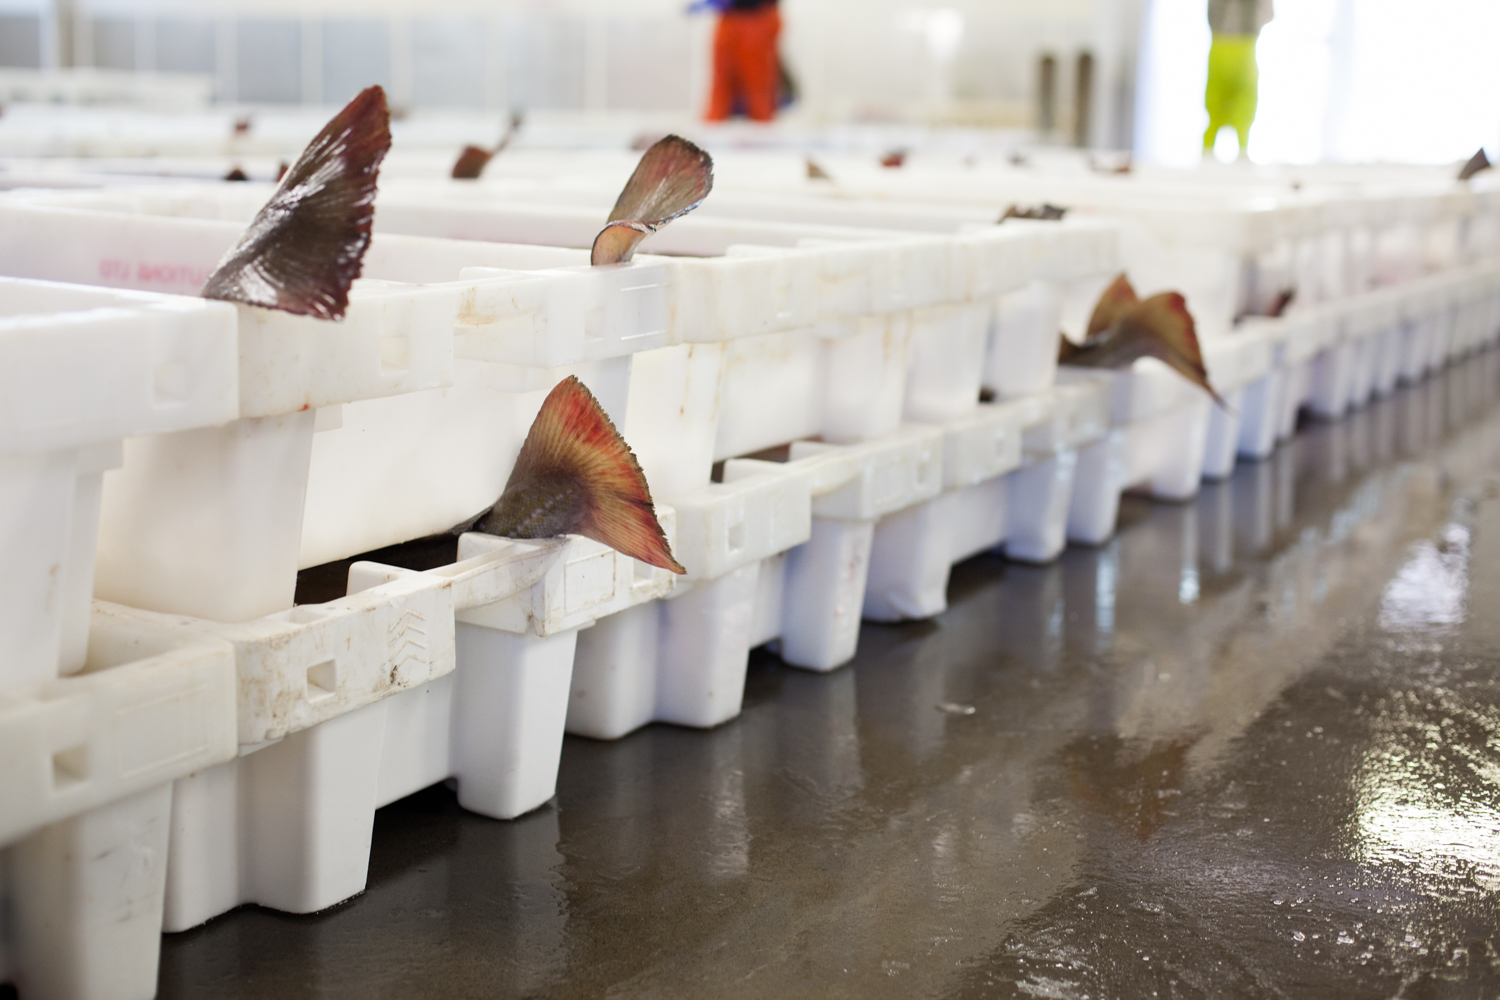 Andrew Charles at the Peterhead Port Authority Fish Market in Peterhead Aberdeenshire, Scotland. For Waitrose Weekend.